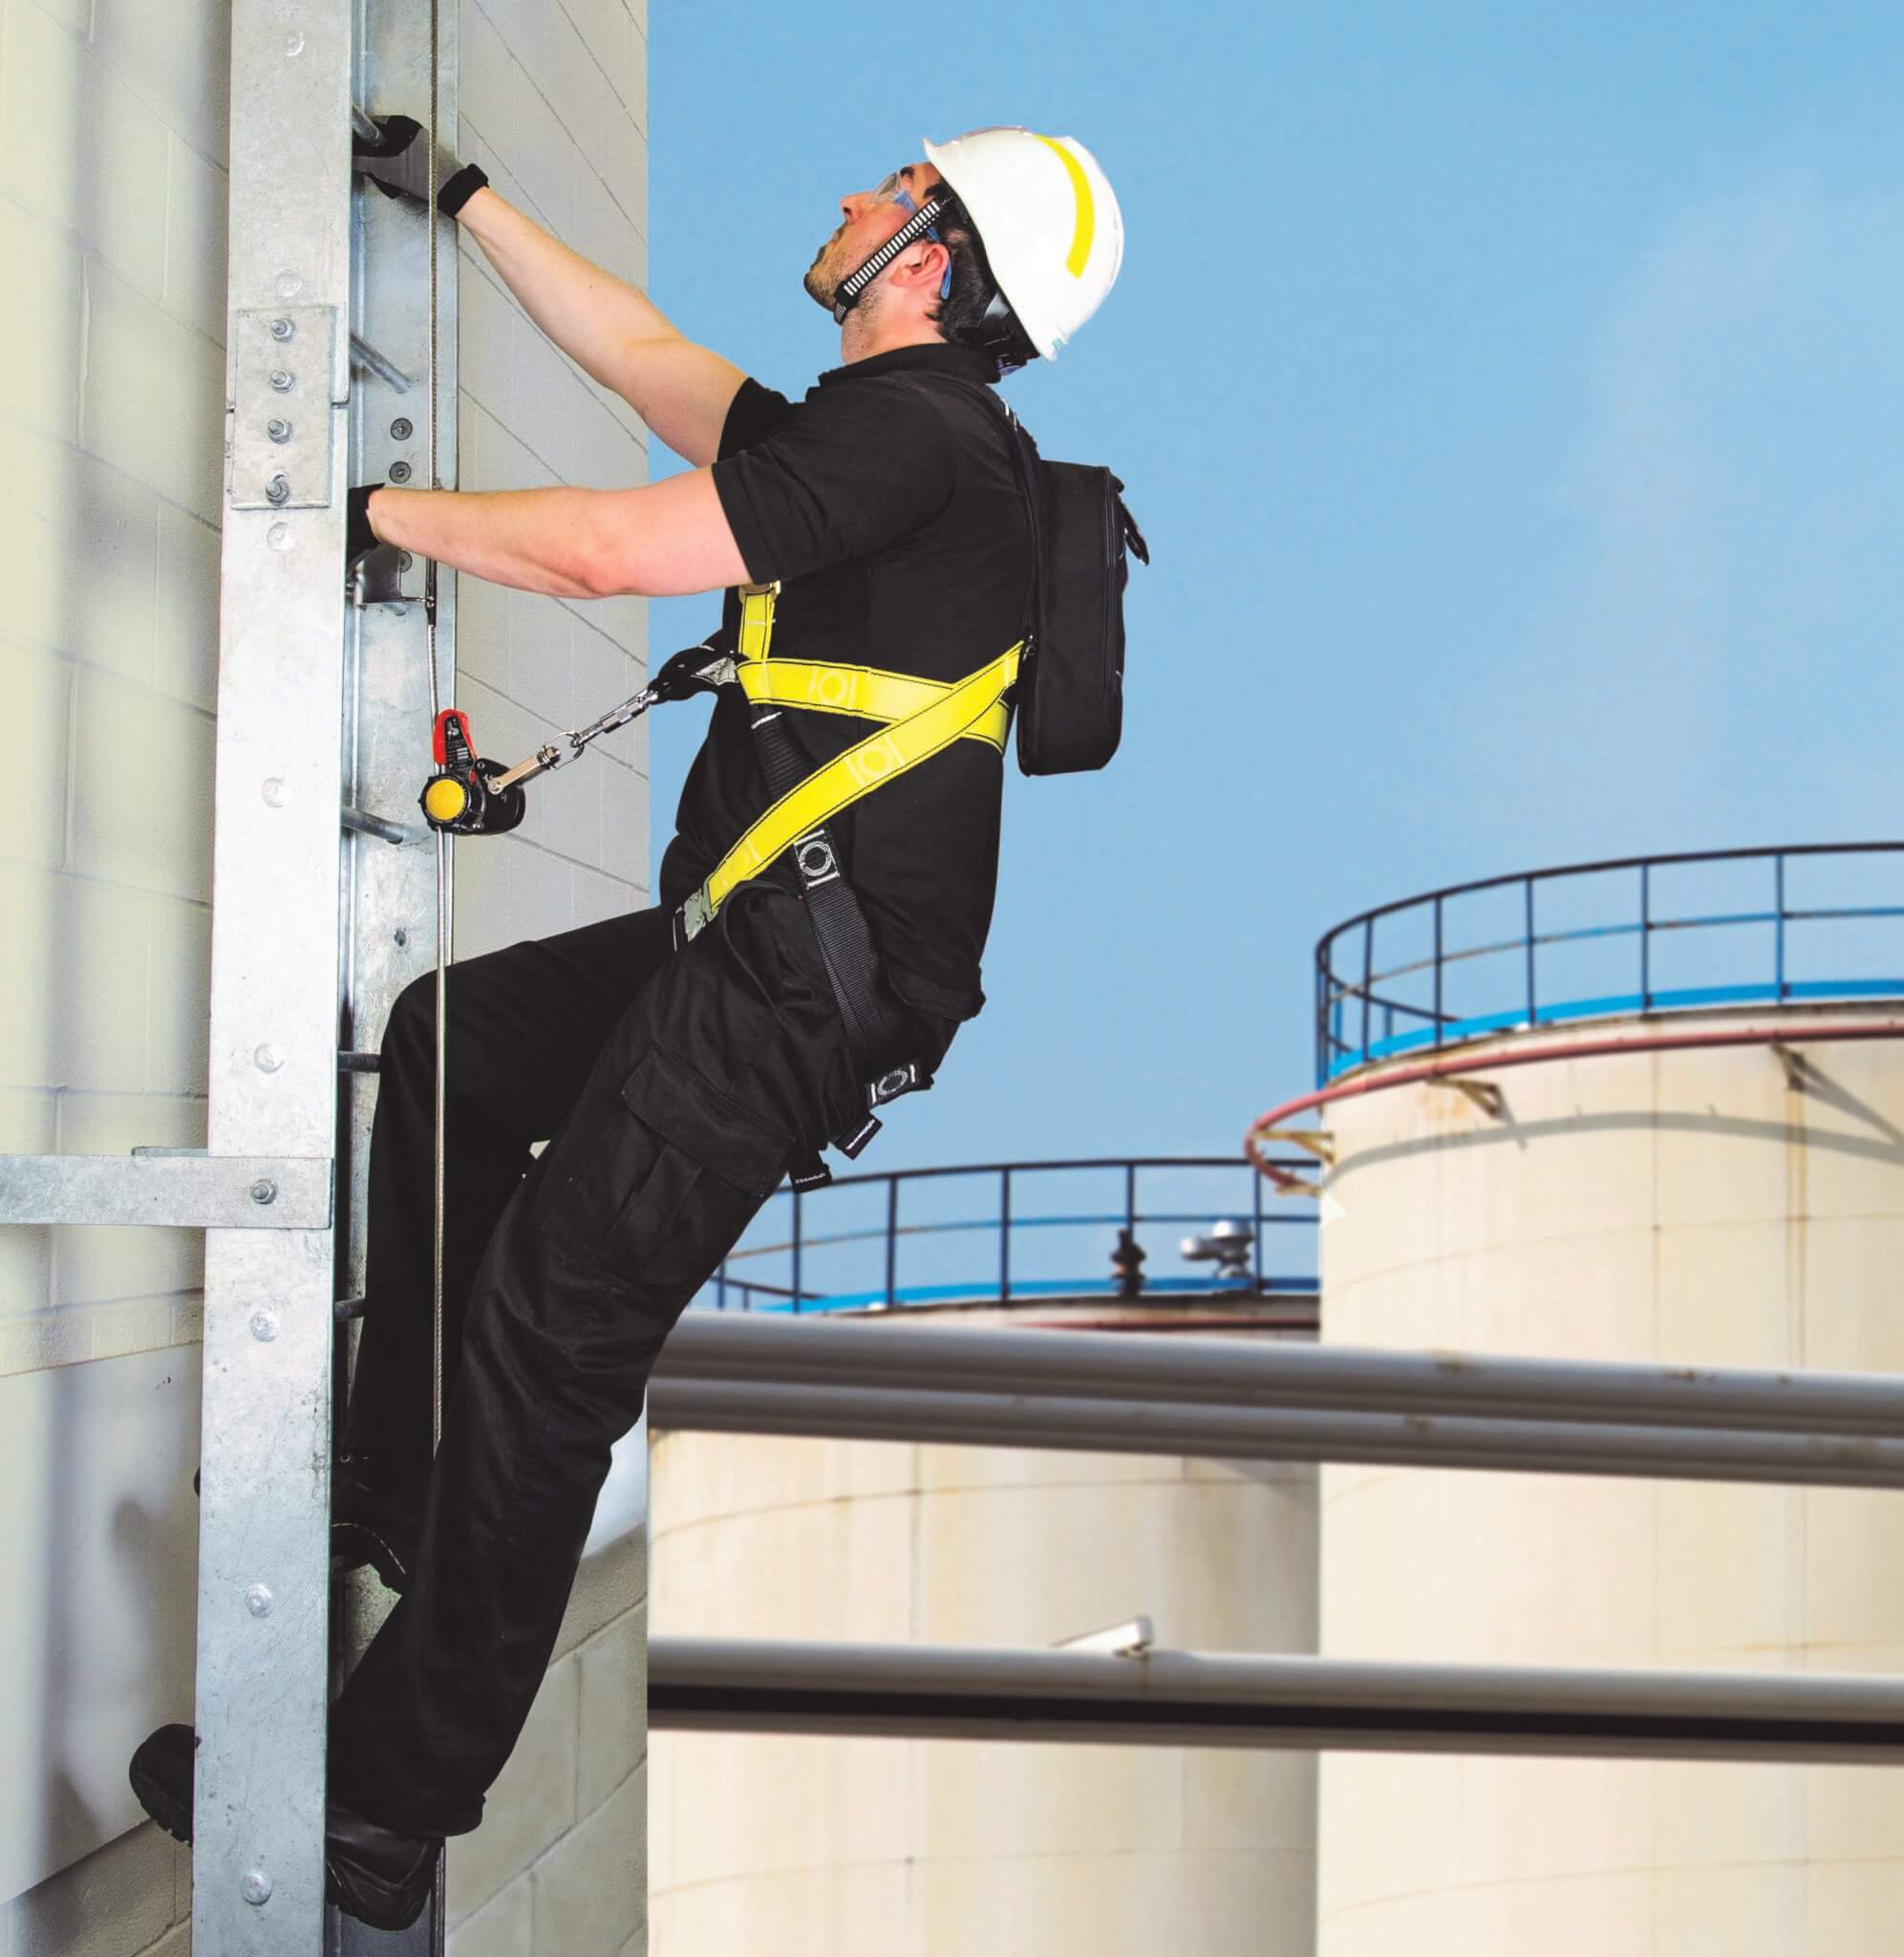 Vertical Line Ladder - Roof Safety - Small